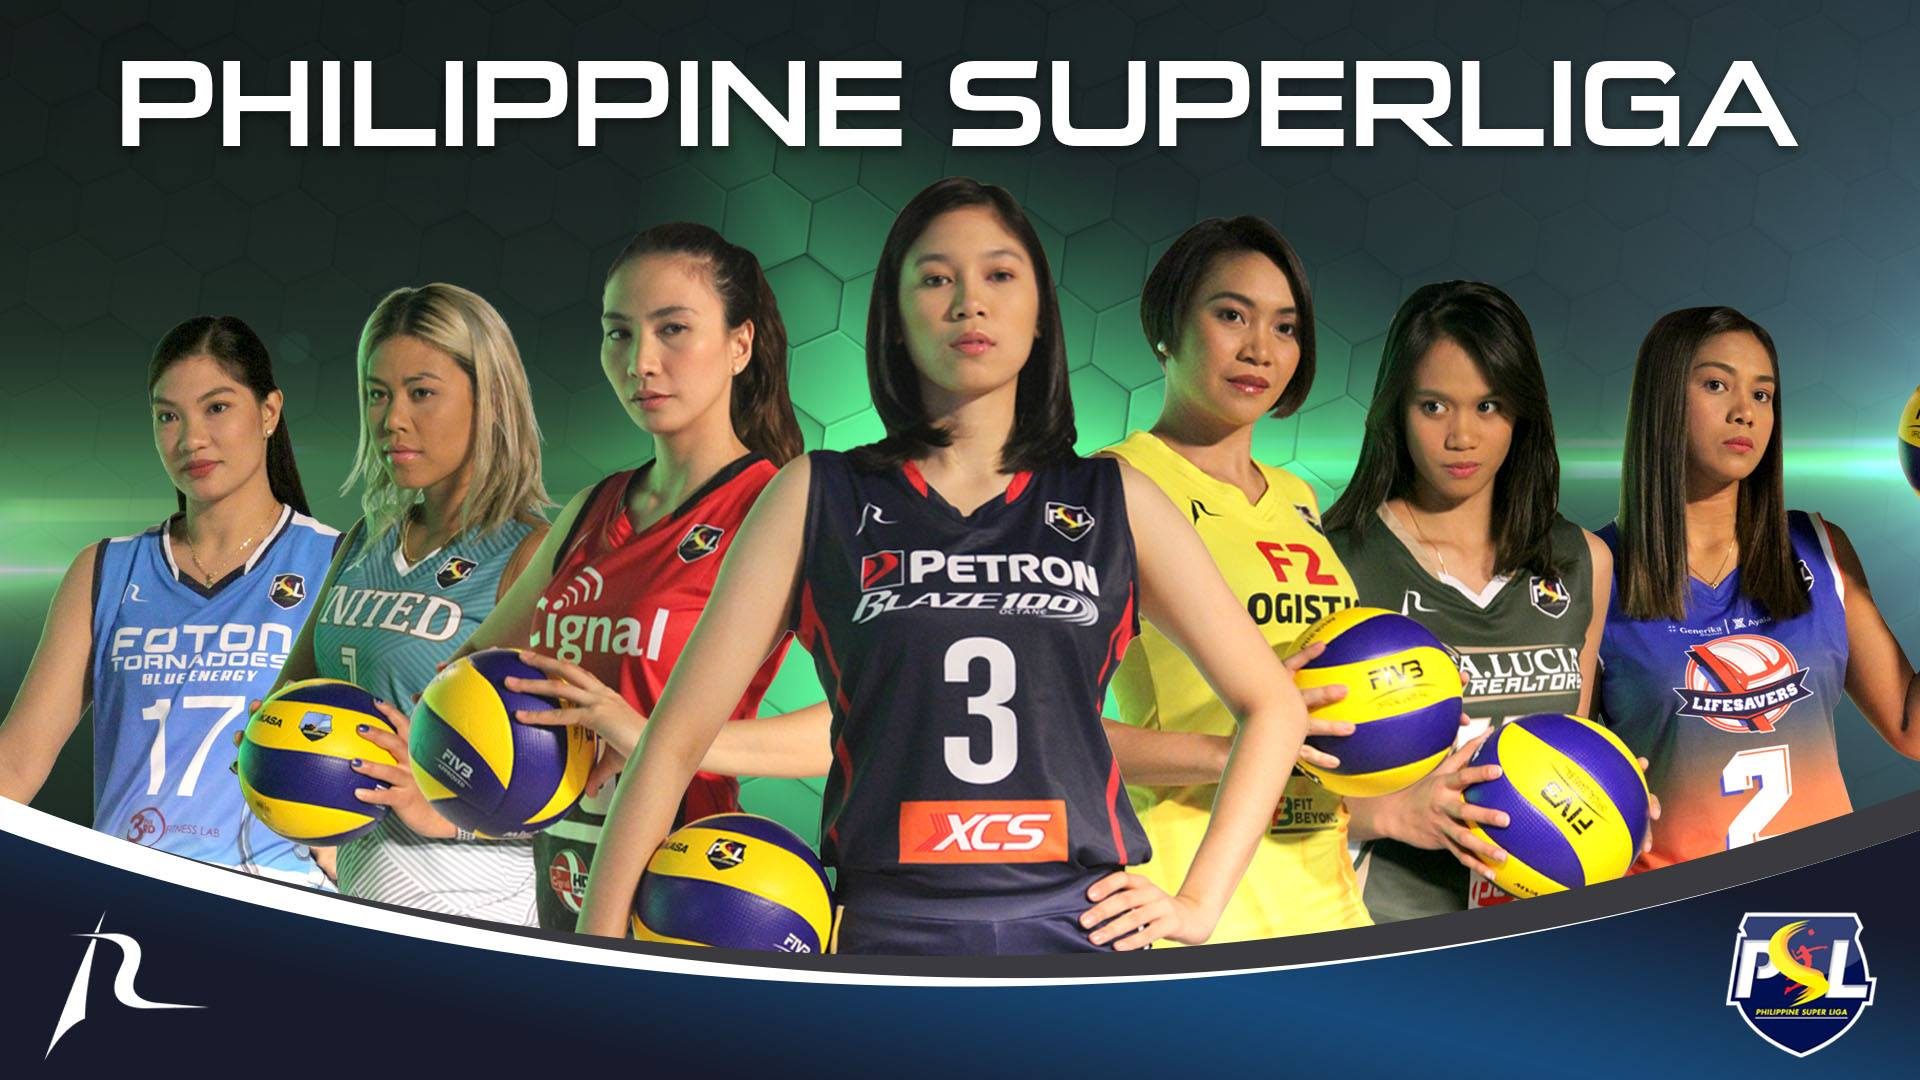 c29bcab0510 We Are Rebel - Official website of Team Rebel Sports Pilipinas